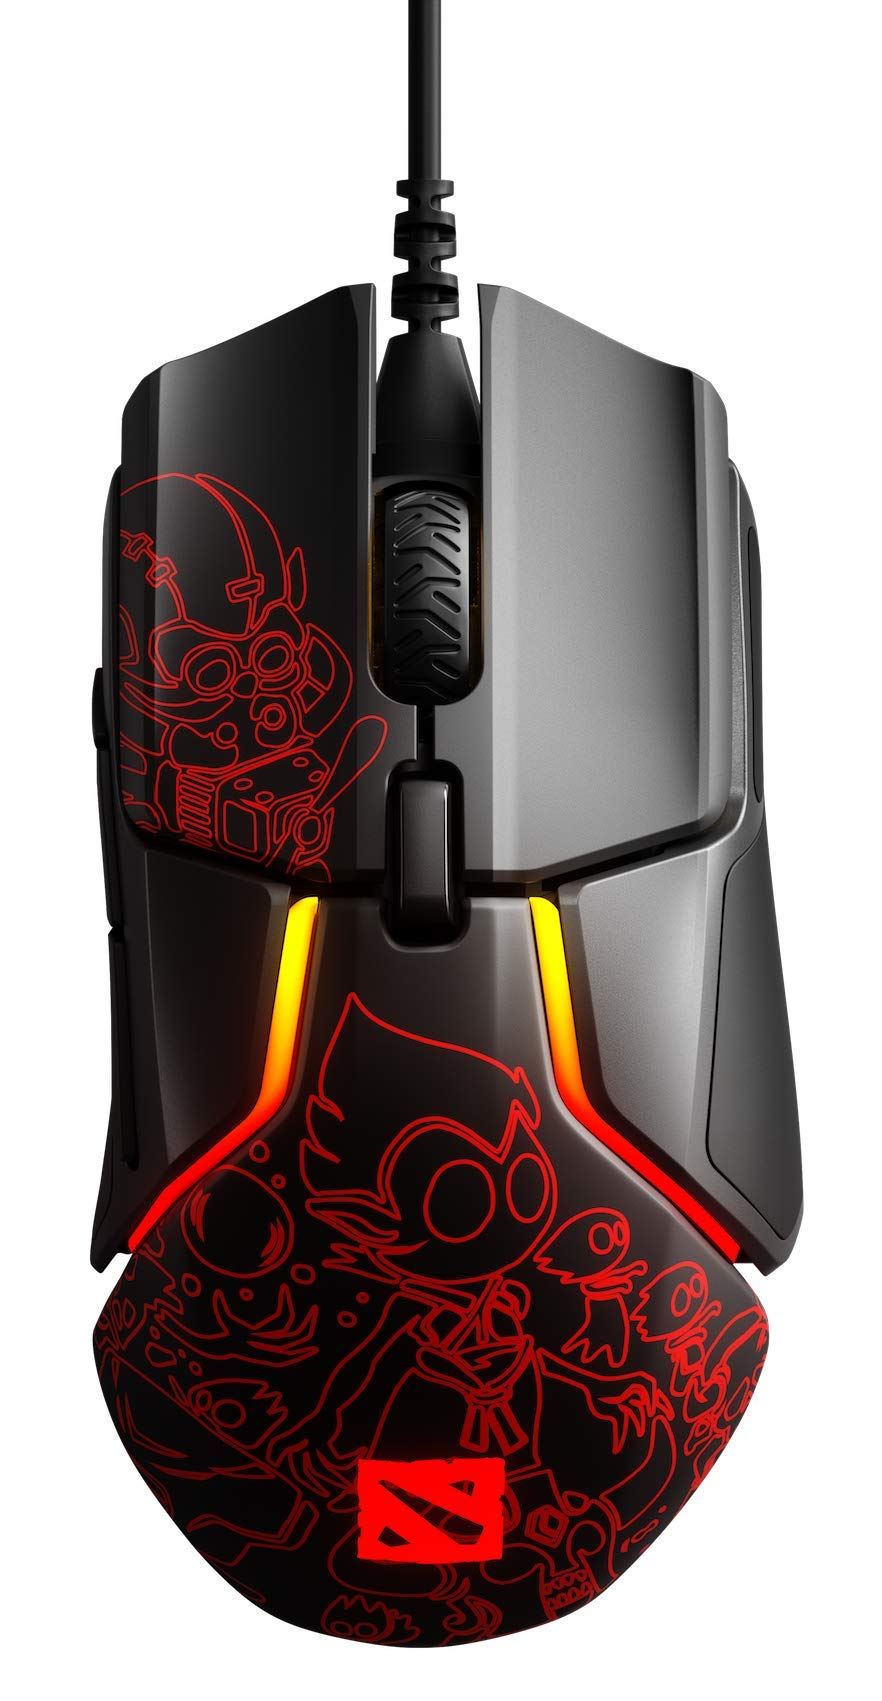 SteelSeries Rival 600 Gaming Mouse - 12, 000 CPI TrueMove3+ Dual Optical Sensor - 0.5 Lift-Off Distance - Weight System - Dota 2 Design PC by SteelSeries